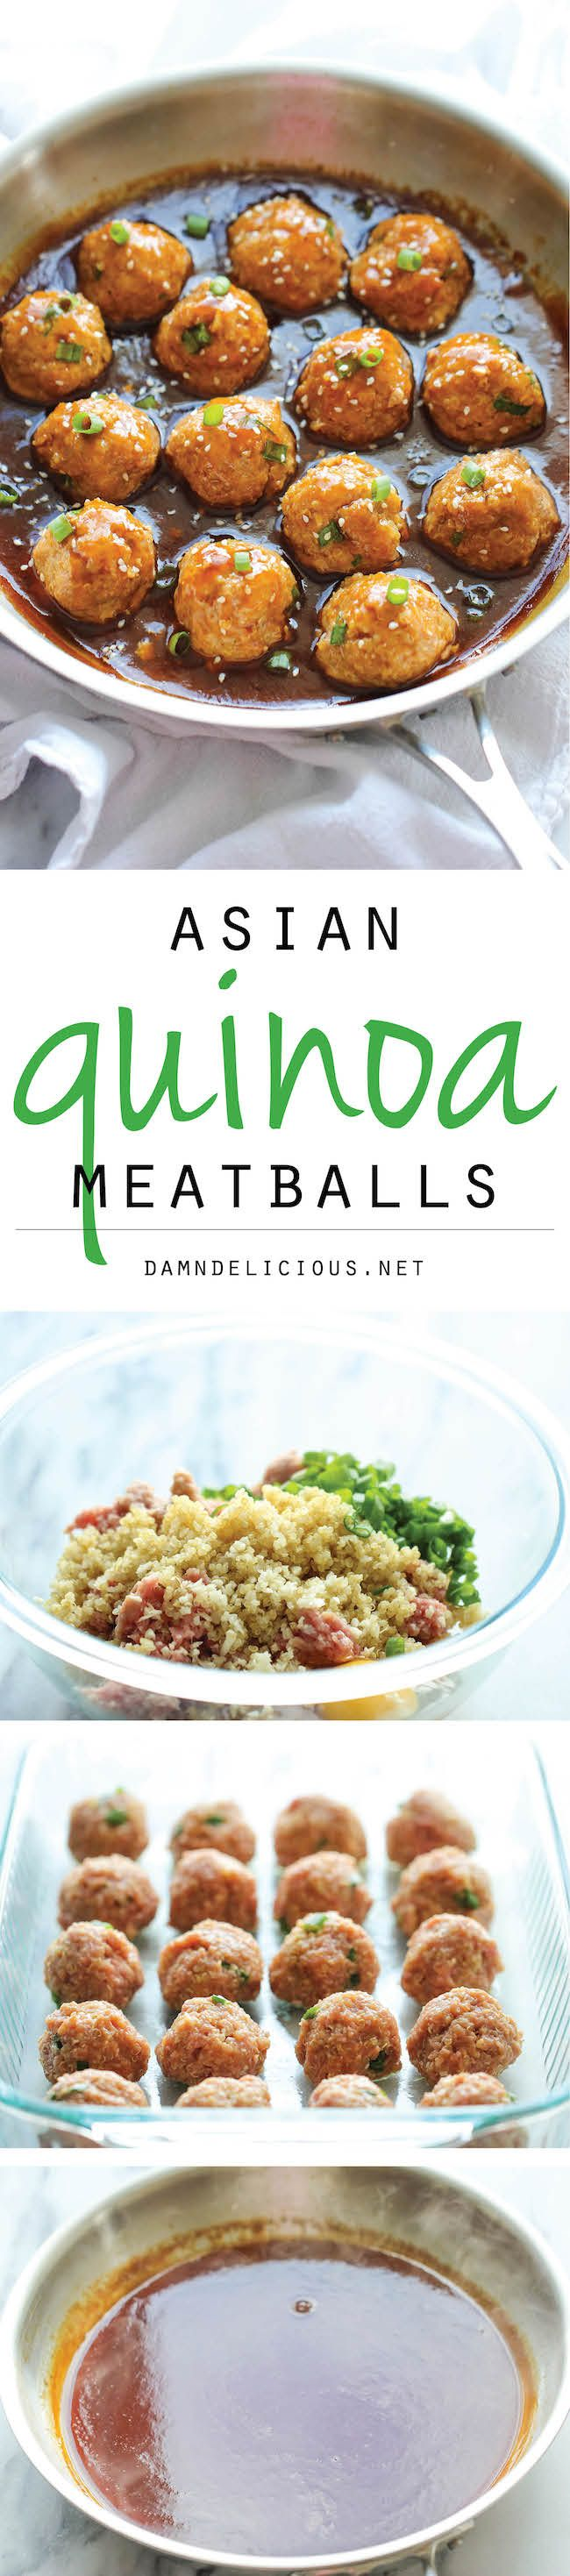 Asian Quinoa Meatballs - Healthy, nutritious and packed with so much flavor. Perfect as an appetizer or a light dinner!   www.lab333.com  https://www.facebook.com/pages/LAB-STYLE/585086788169863  http://www.labs333style.com  www.lablikes.tumblr.com  www.pinterest.com/labstyle